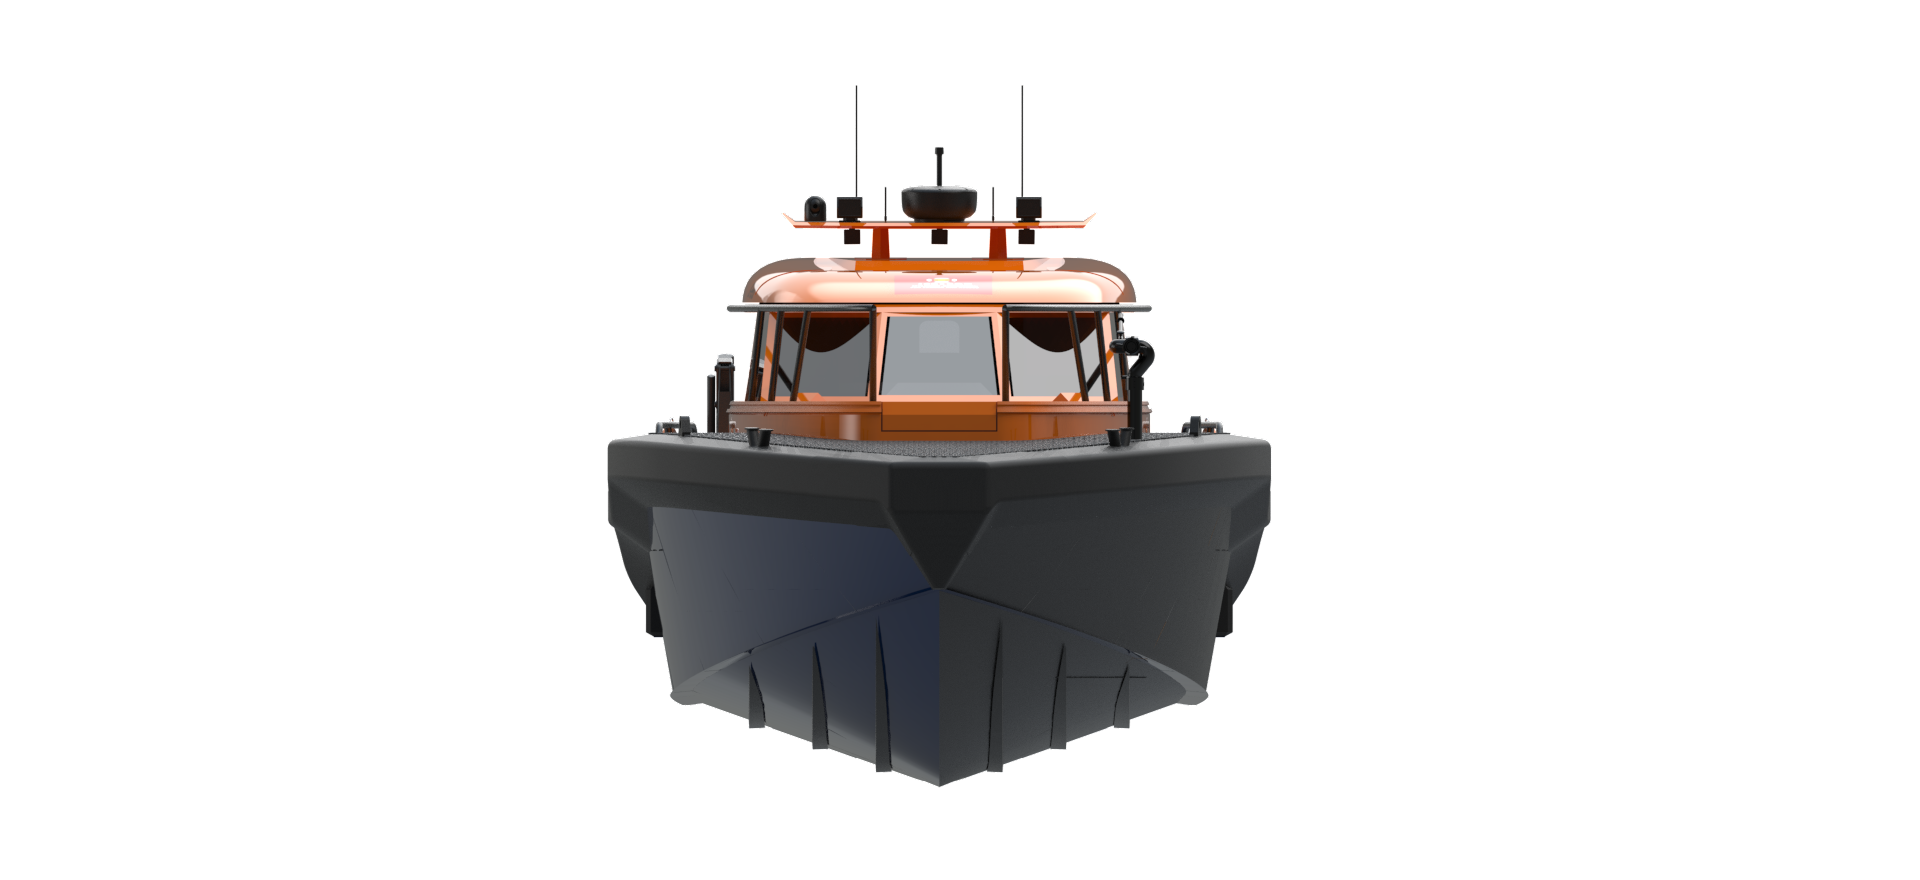 m17 SAR boat rendered model